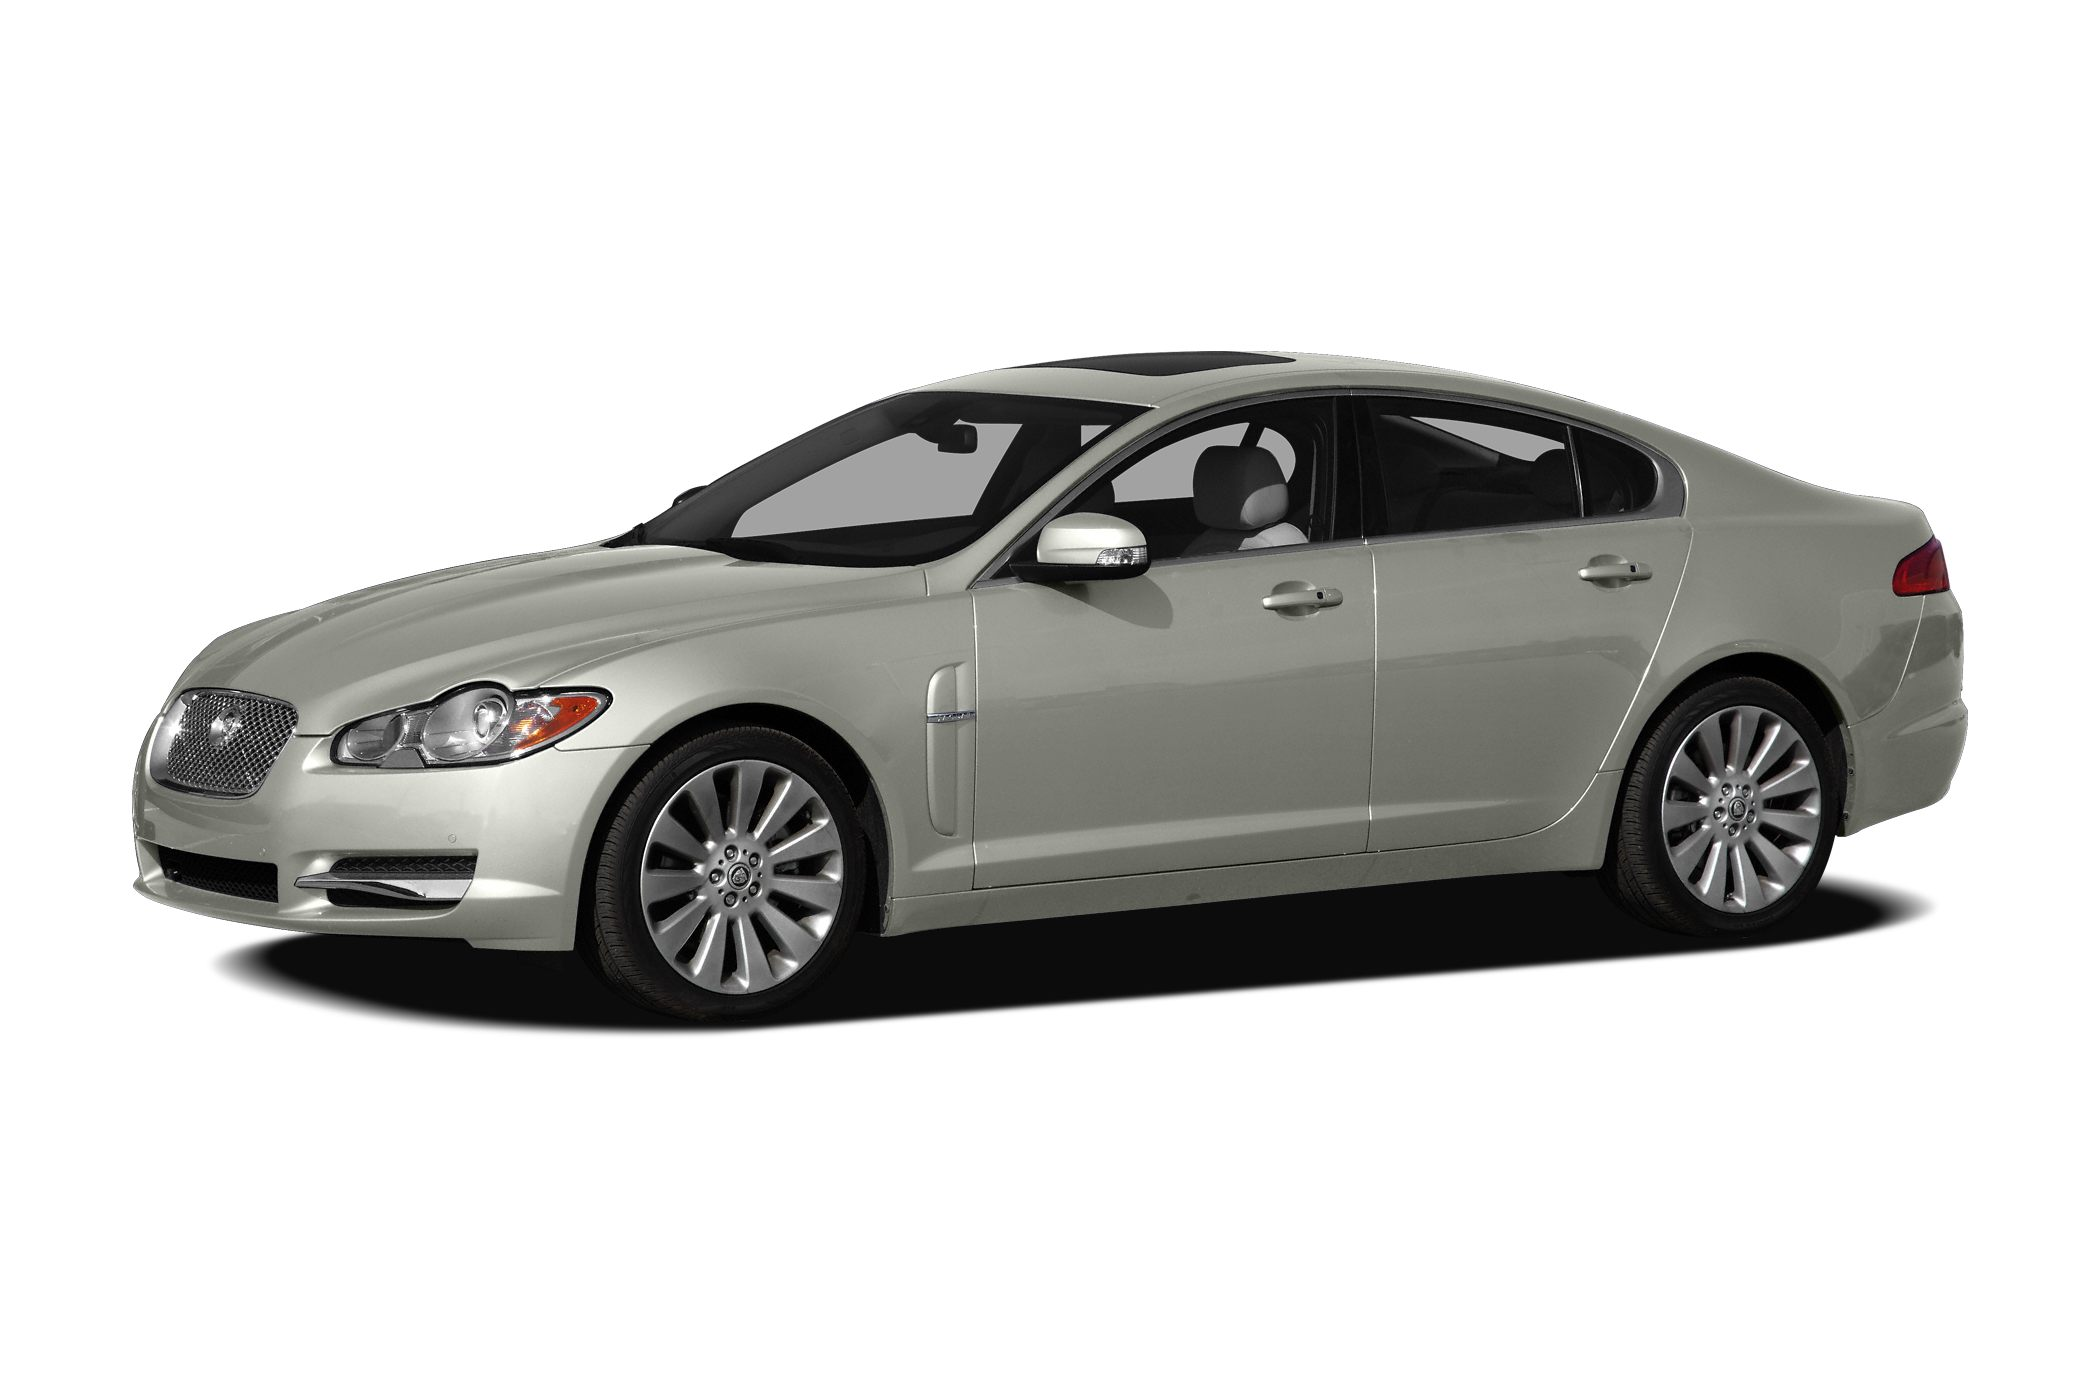 2010 Jaguar XF Premium Sedan for sale in Virginia Beach for $24,998 with 76,173 miles